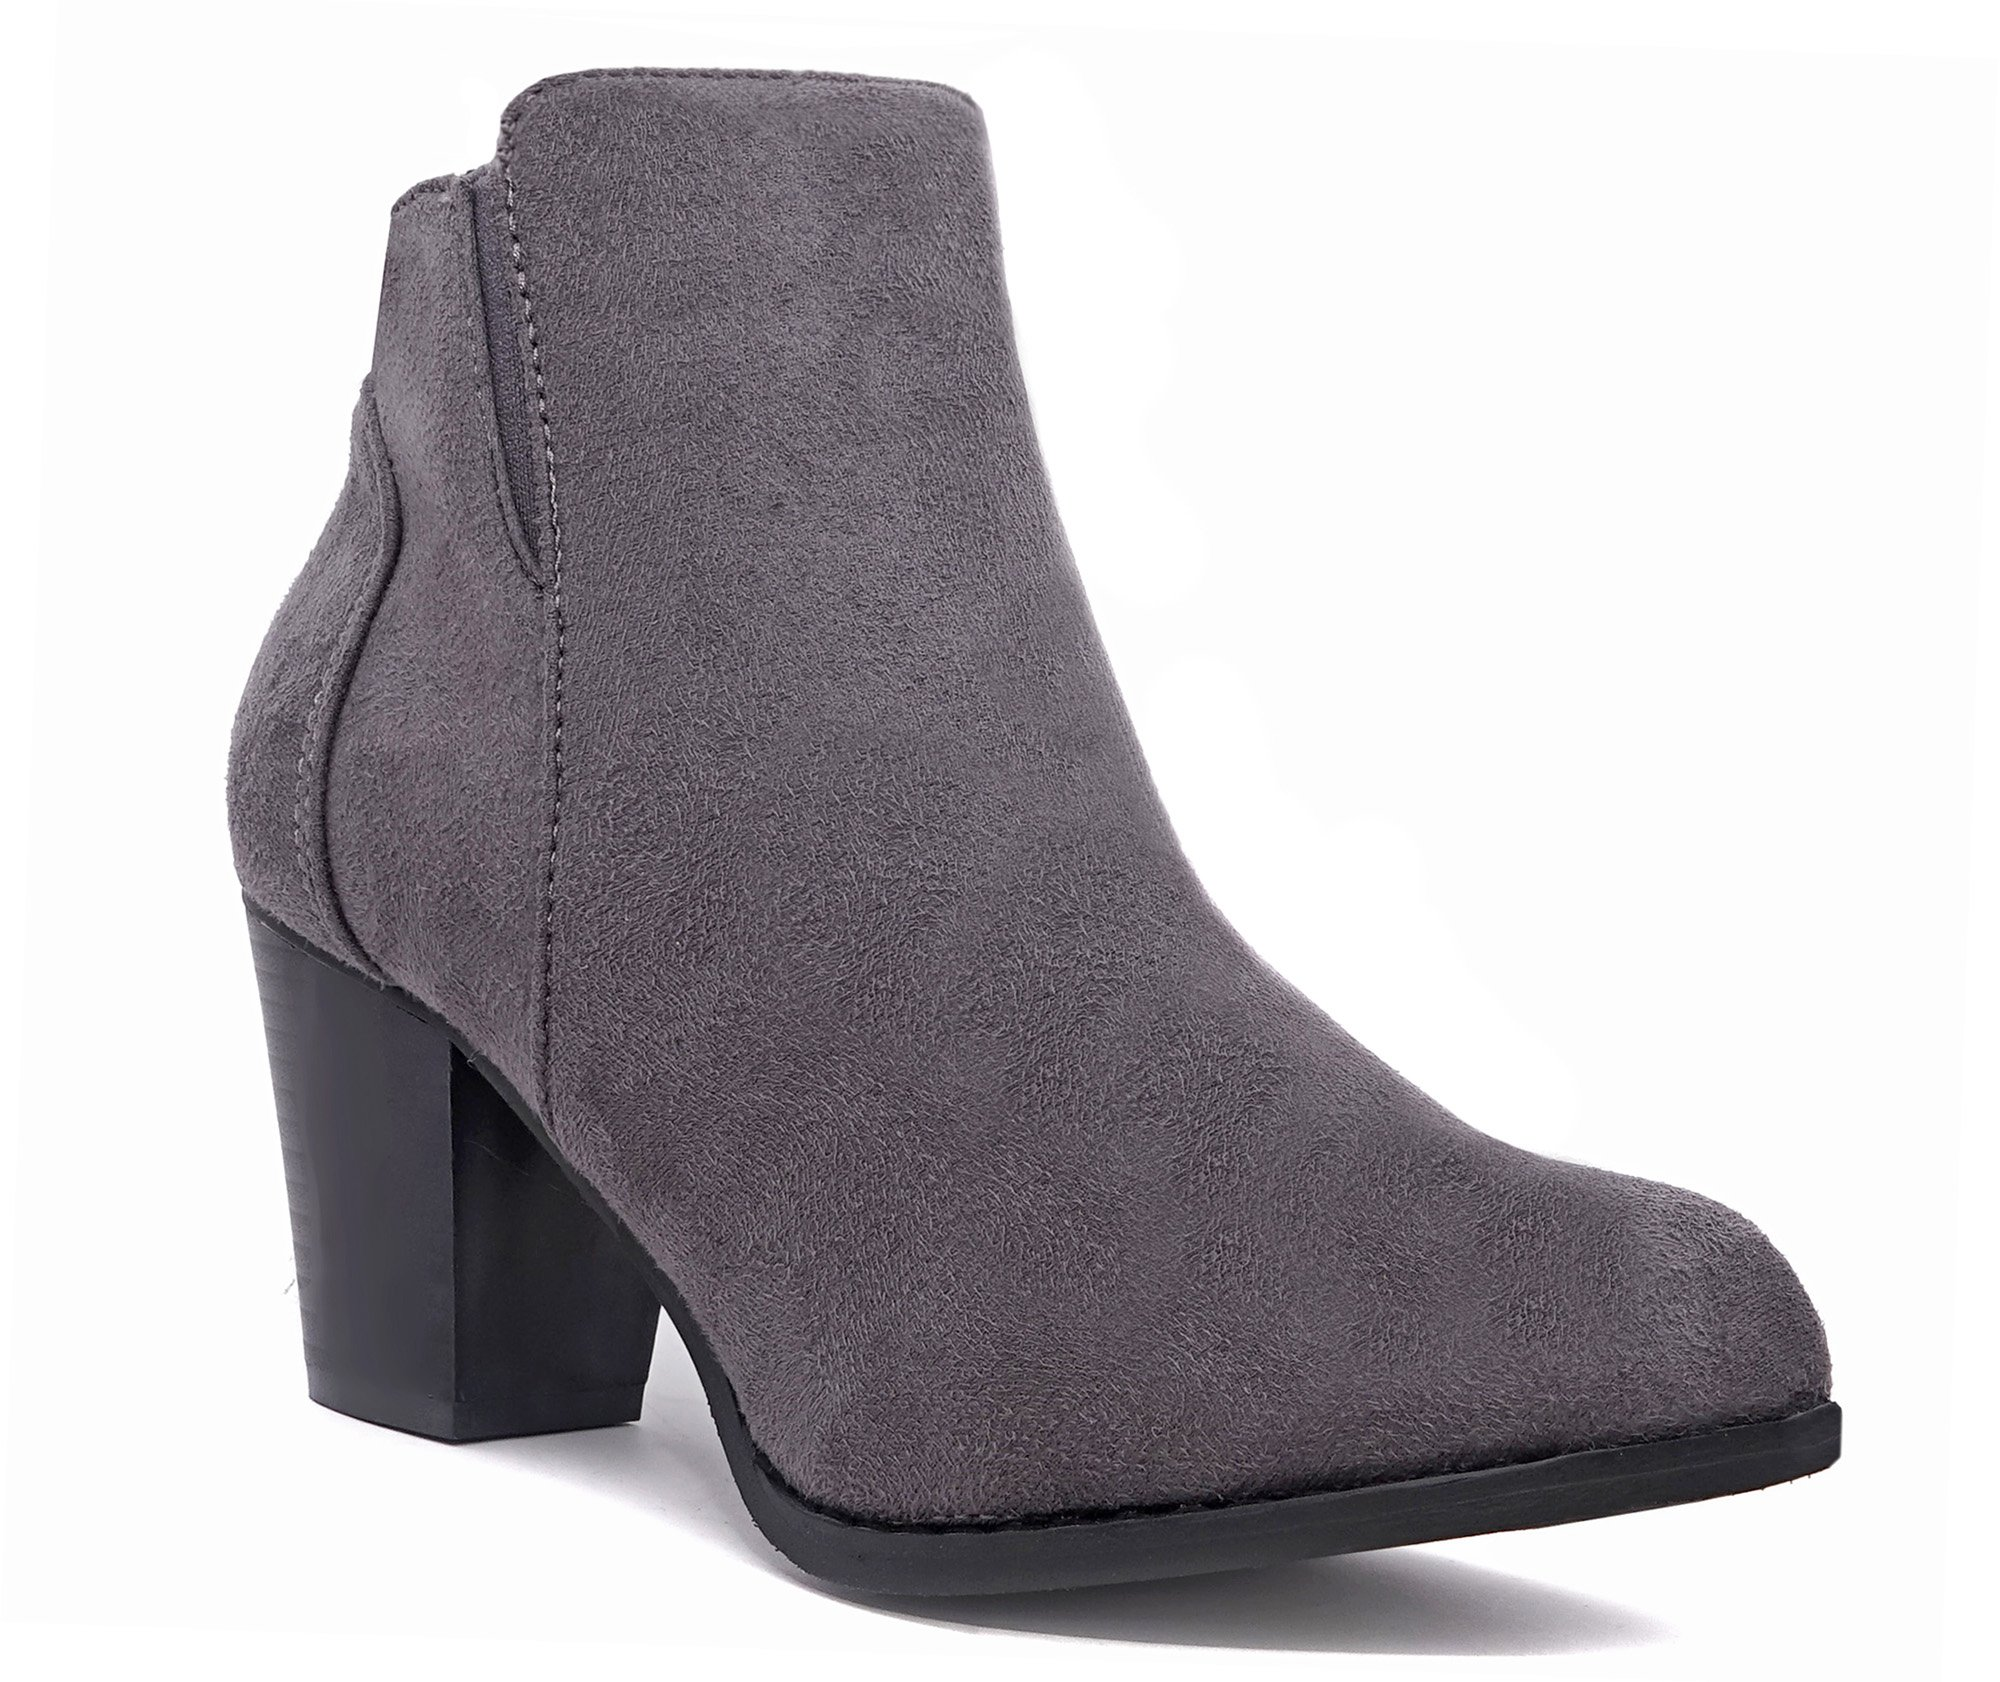 c9338541c Crocs Women s Berryessa Tall Suede Boot - AB Ankle Boot US Store